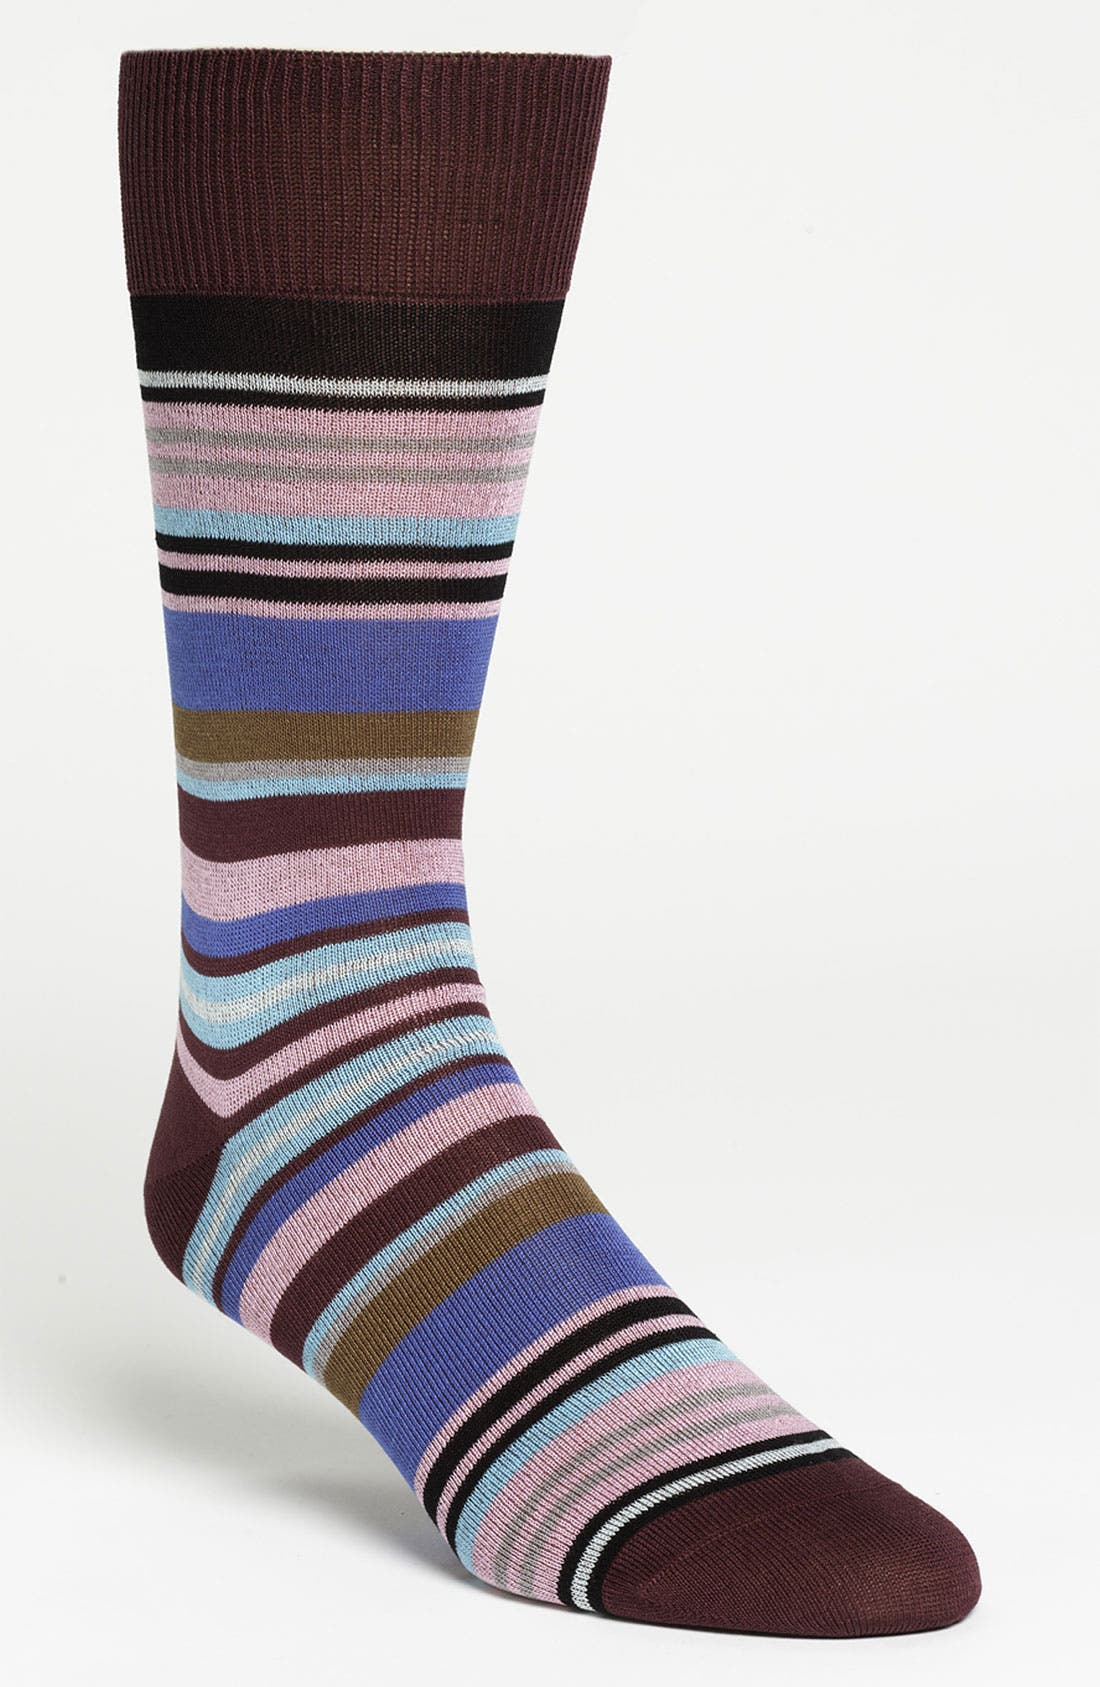 Main Image - Paul Smith Accessories Bright Stripe Socks